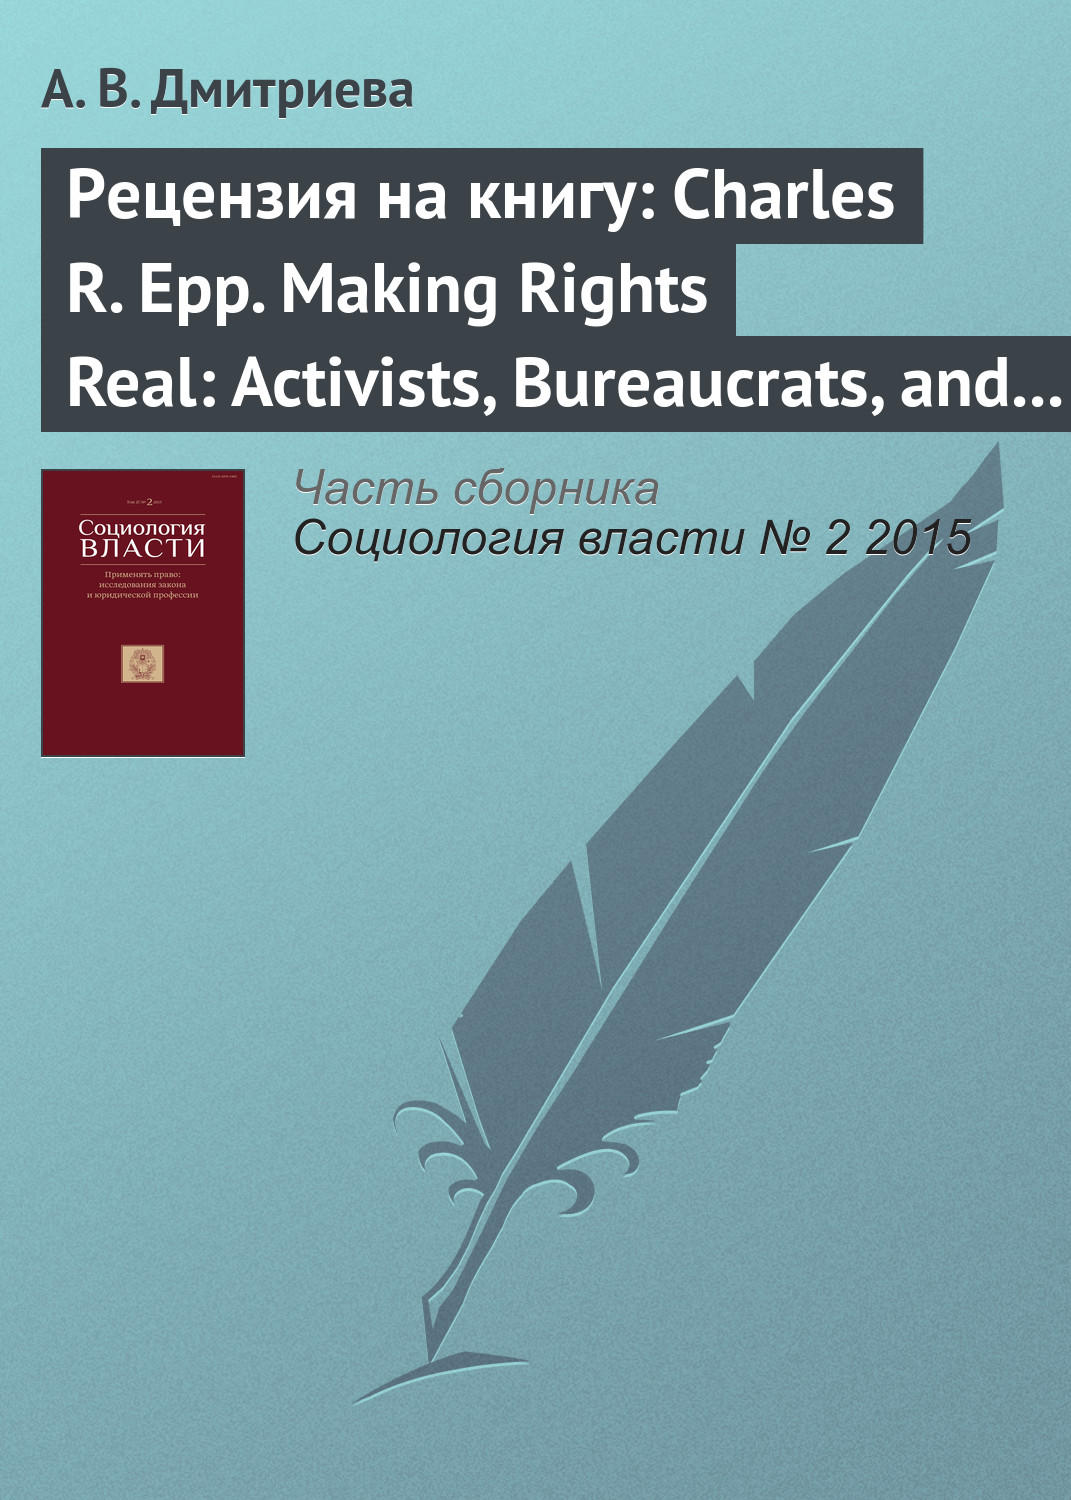 А. В. Дмитриева Рецензия на книгу: Charles R. Epp. Making Rights Real: Activists, Bureaucrats, and the Creation of the Legalistic State. Chicago: University of Chicago Press, 2009 bammax fishing lure 1 box metal iron hard bait sequins shore jigging spoon lures fishing connector pin fishing accessories pesca